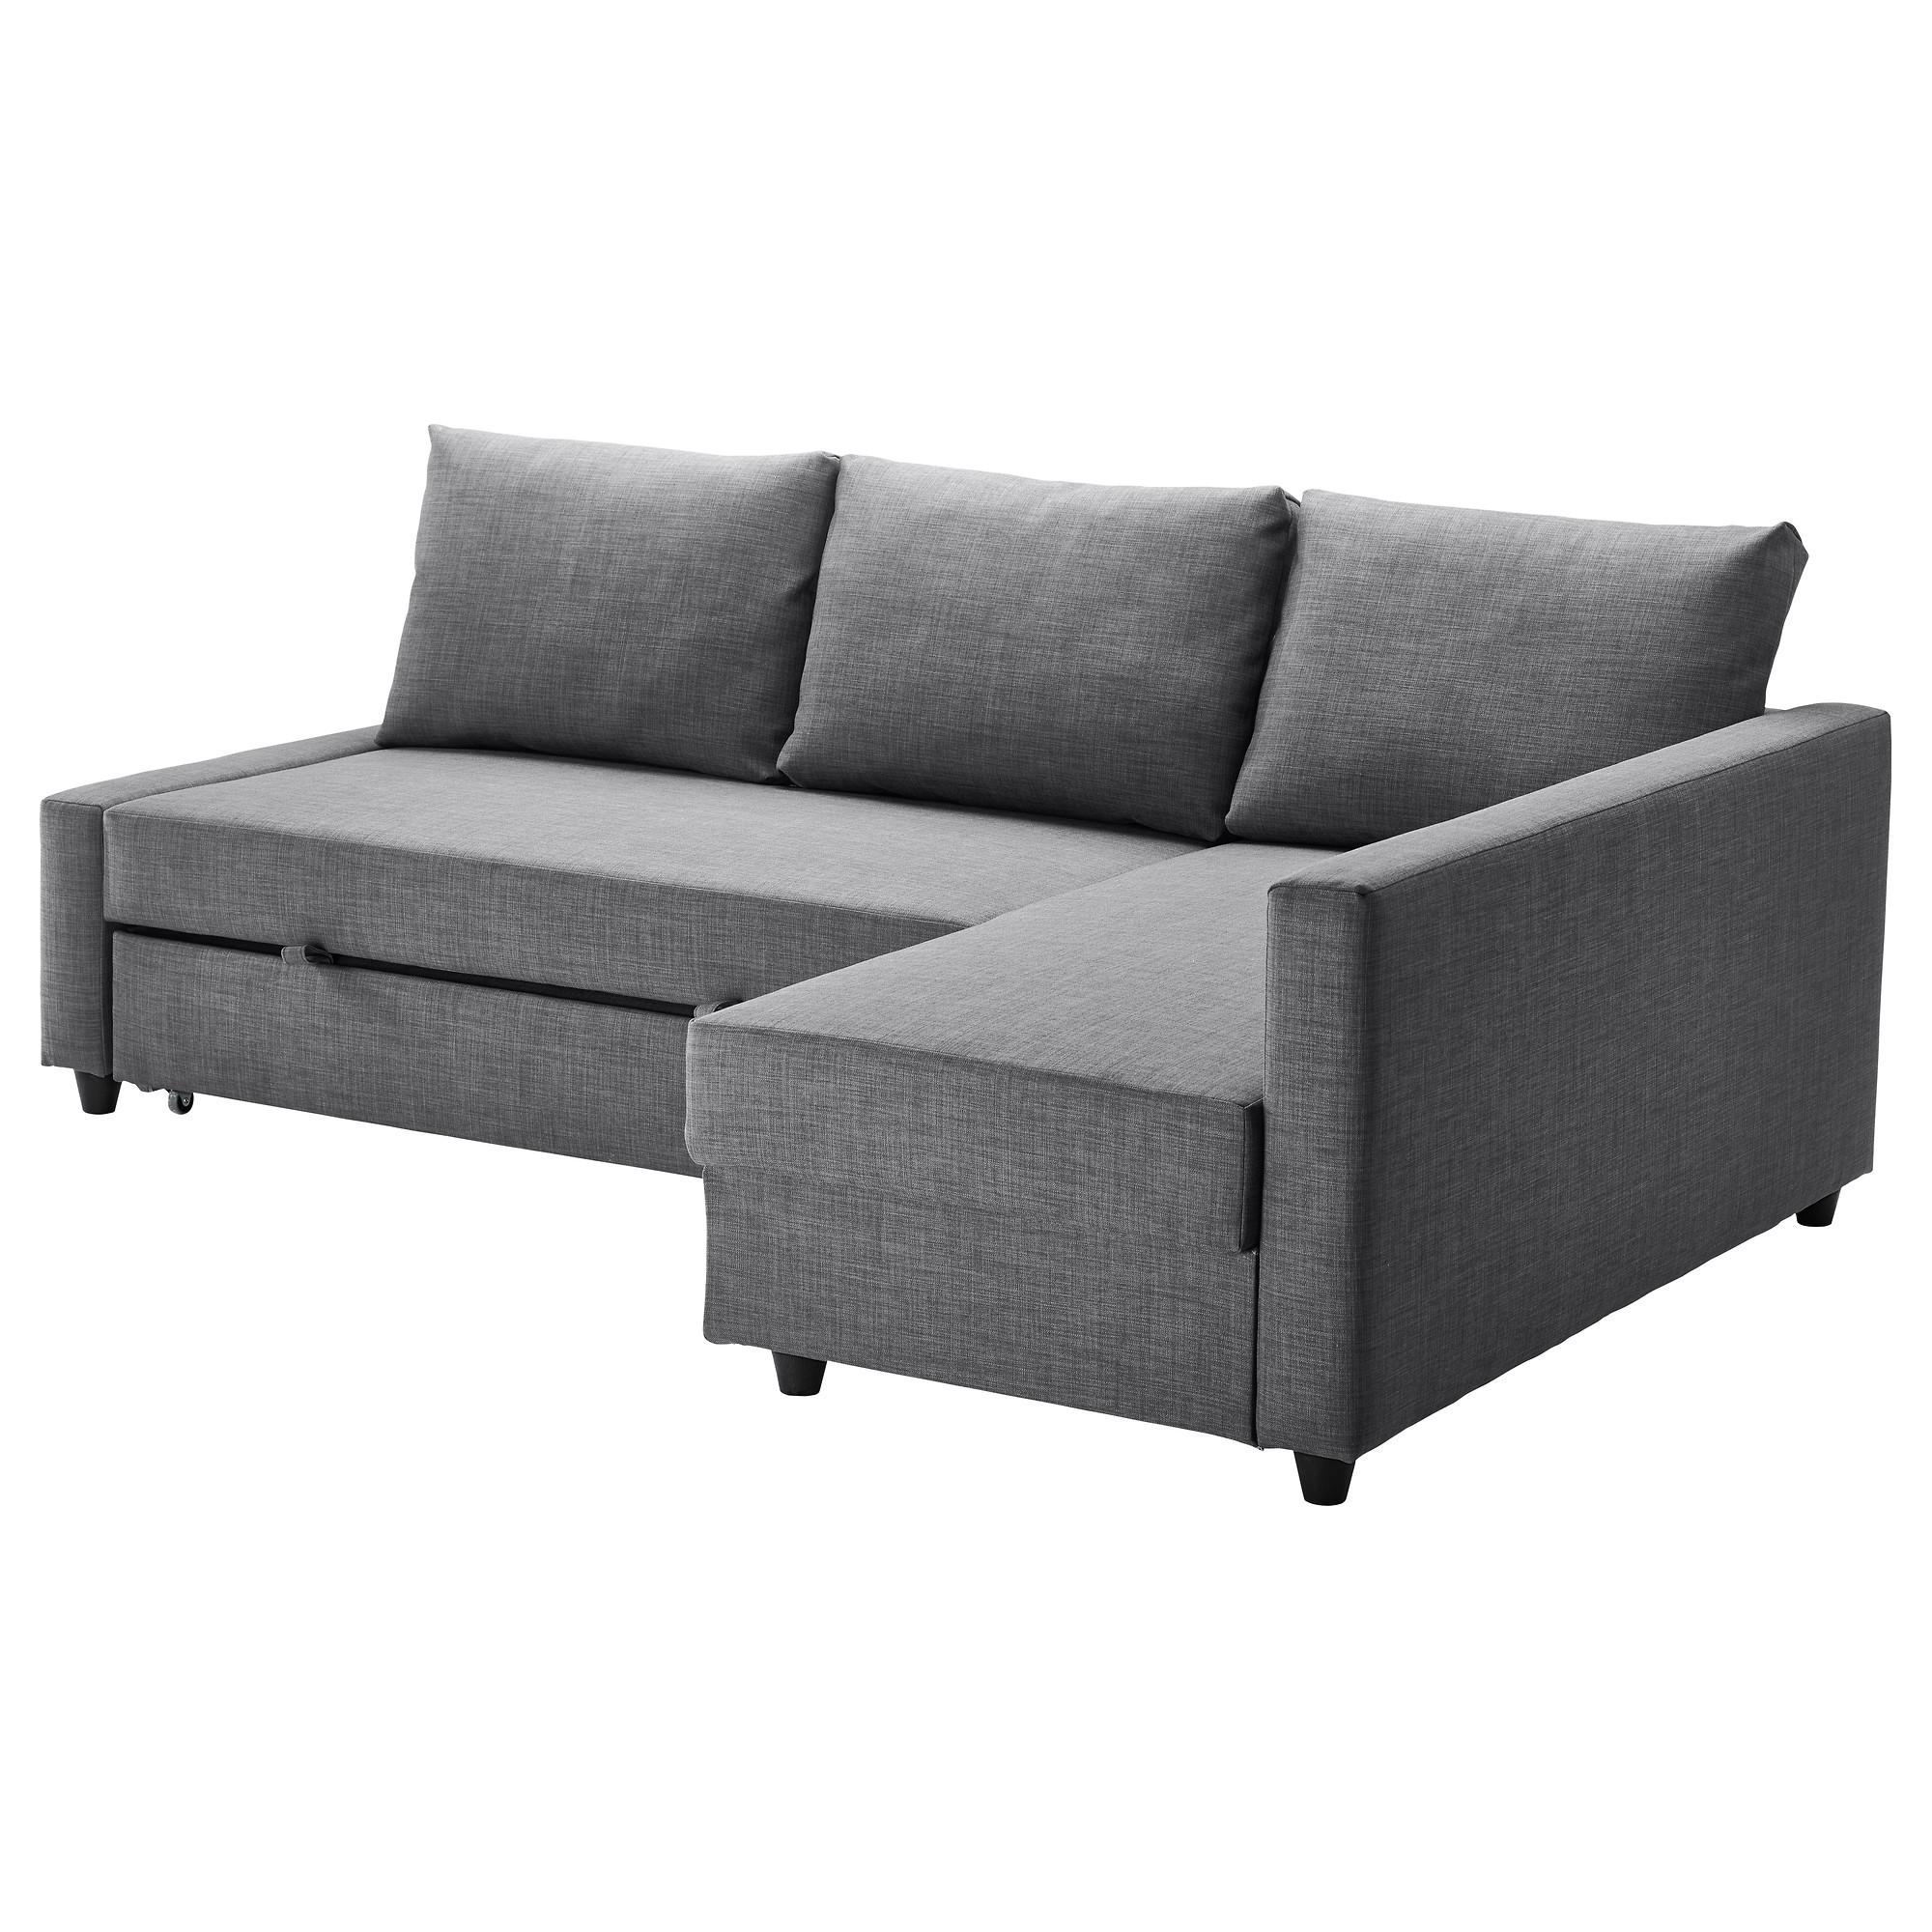 sofa beds & futons - ikea